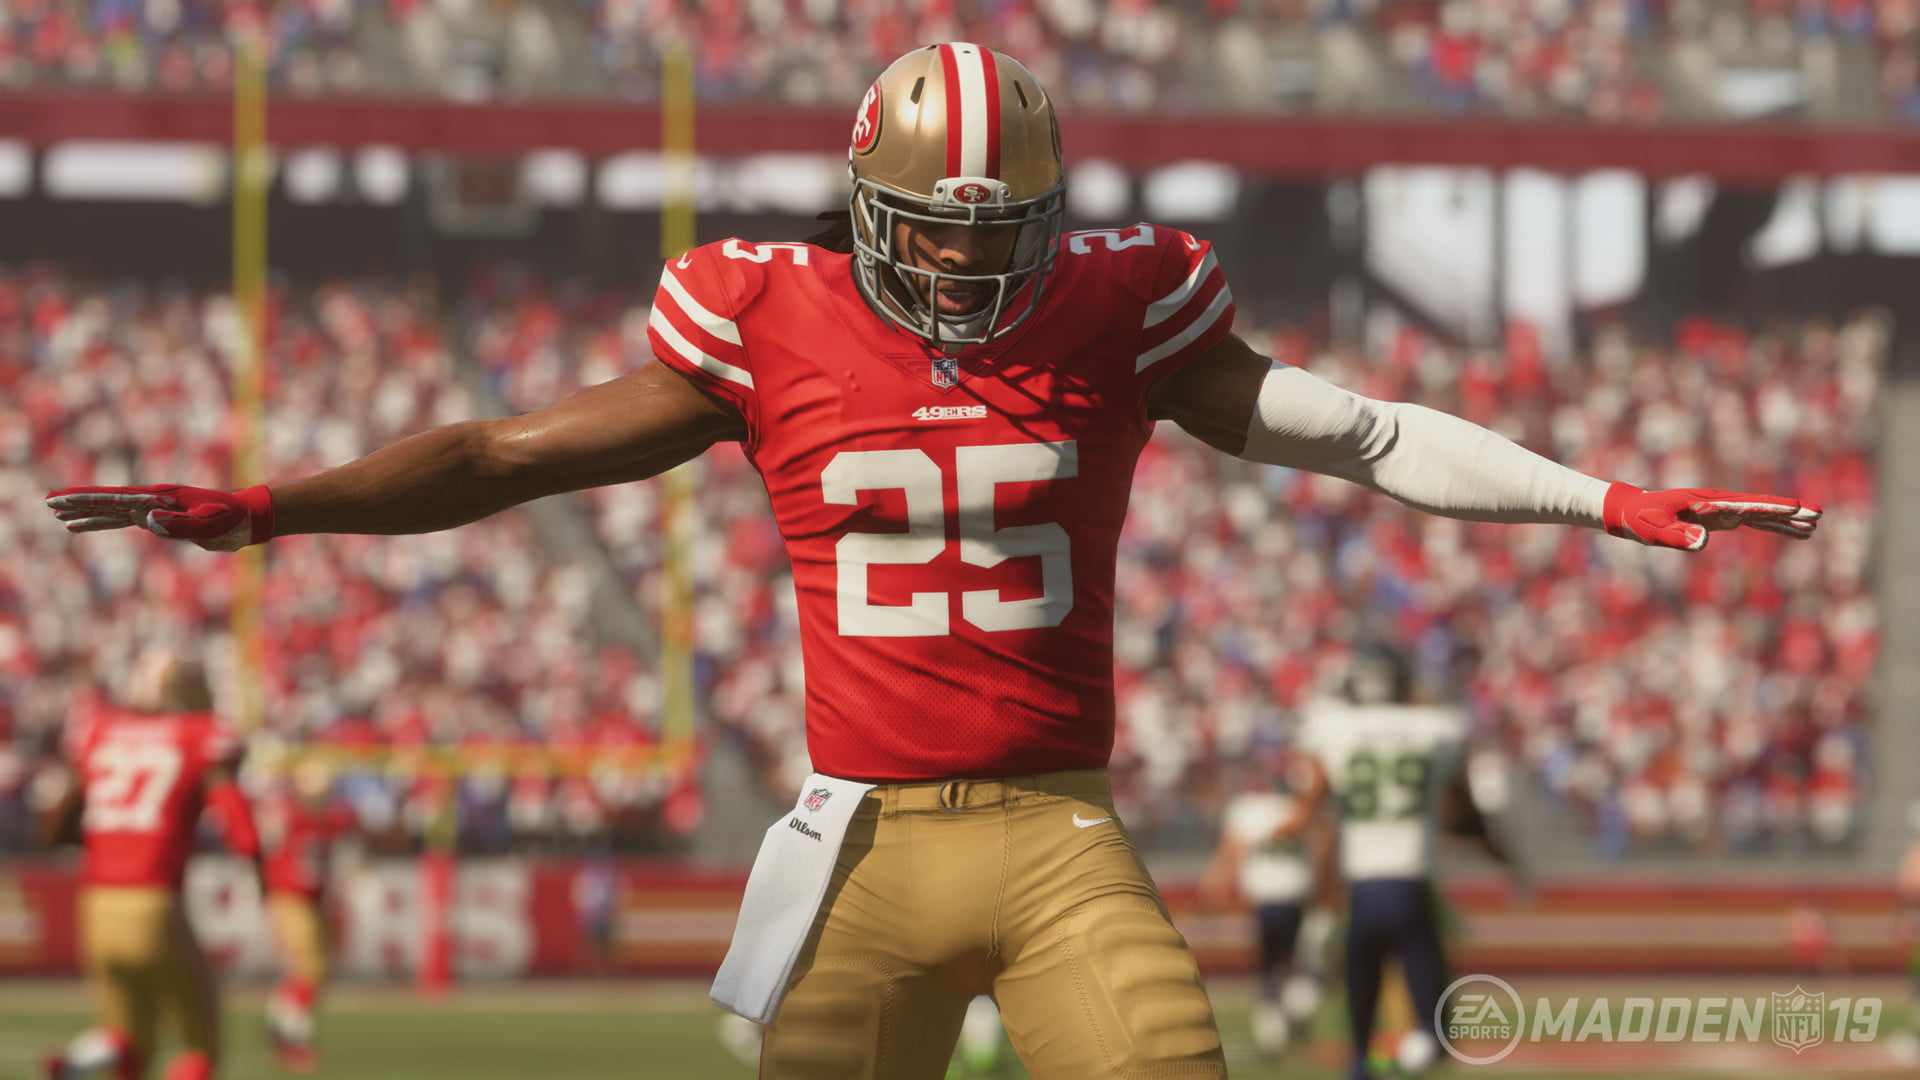 Madden NFL 19' Ultimate Team Progression Guide | Digital Trends